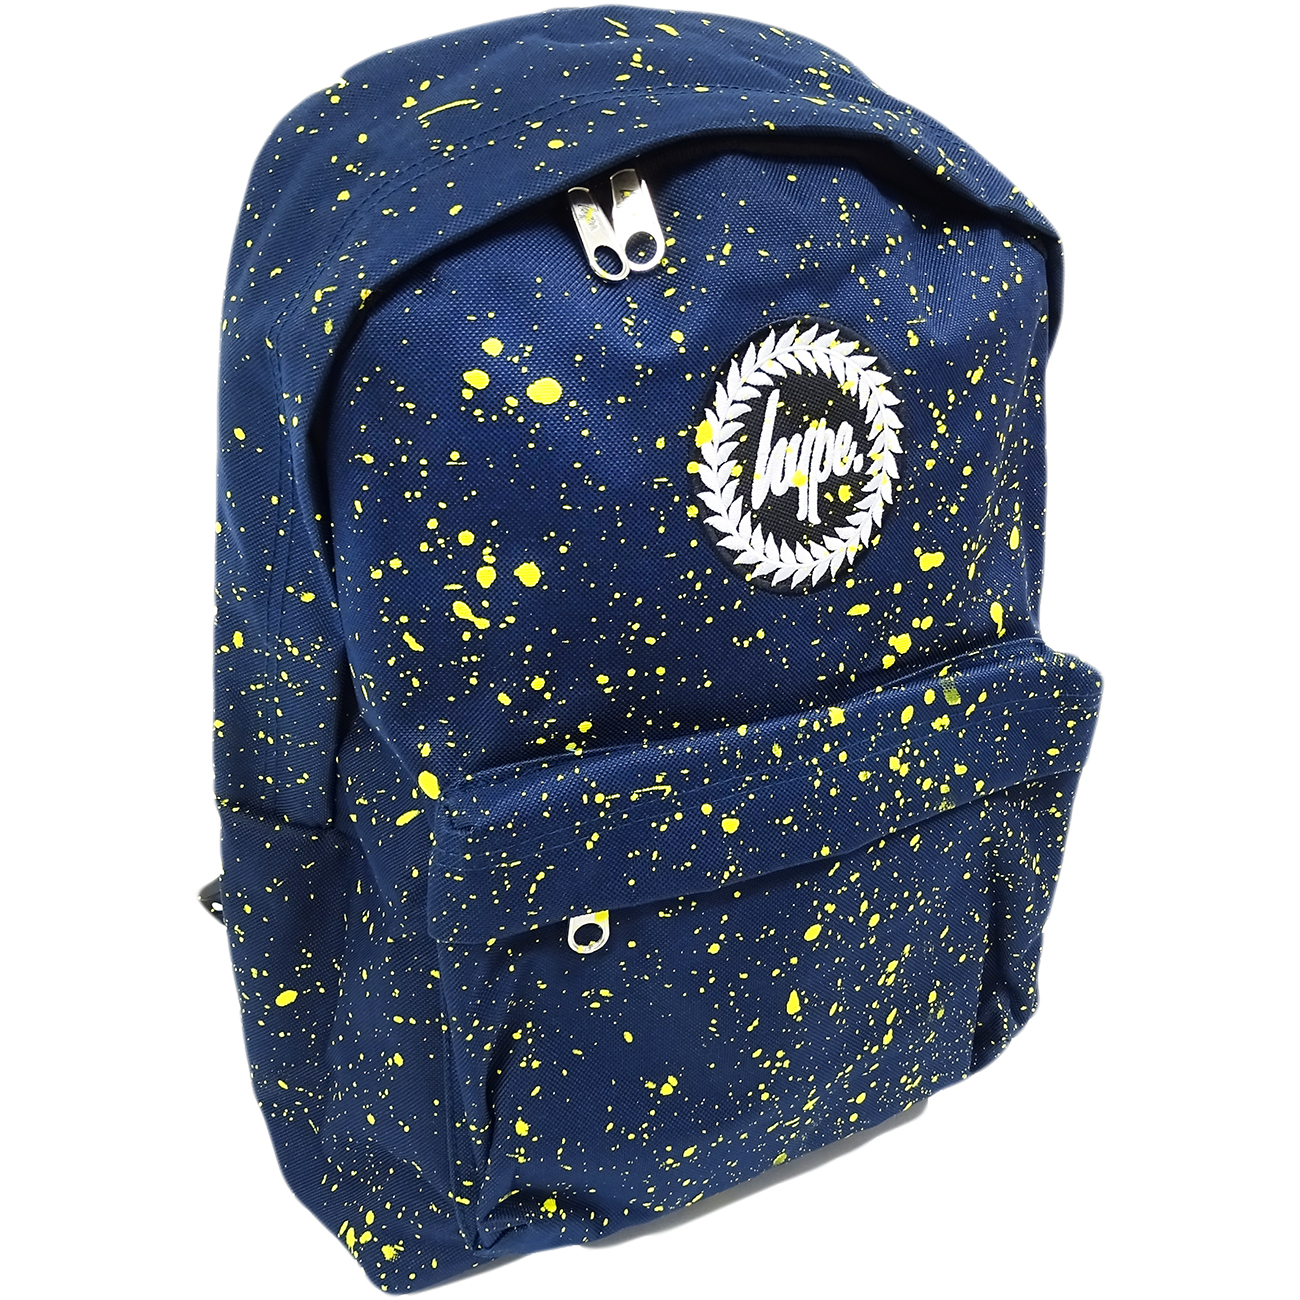 Hype Backpack Splatter Navy with Yellow Bag